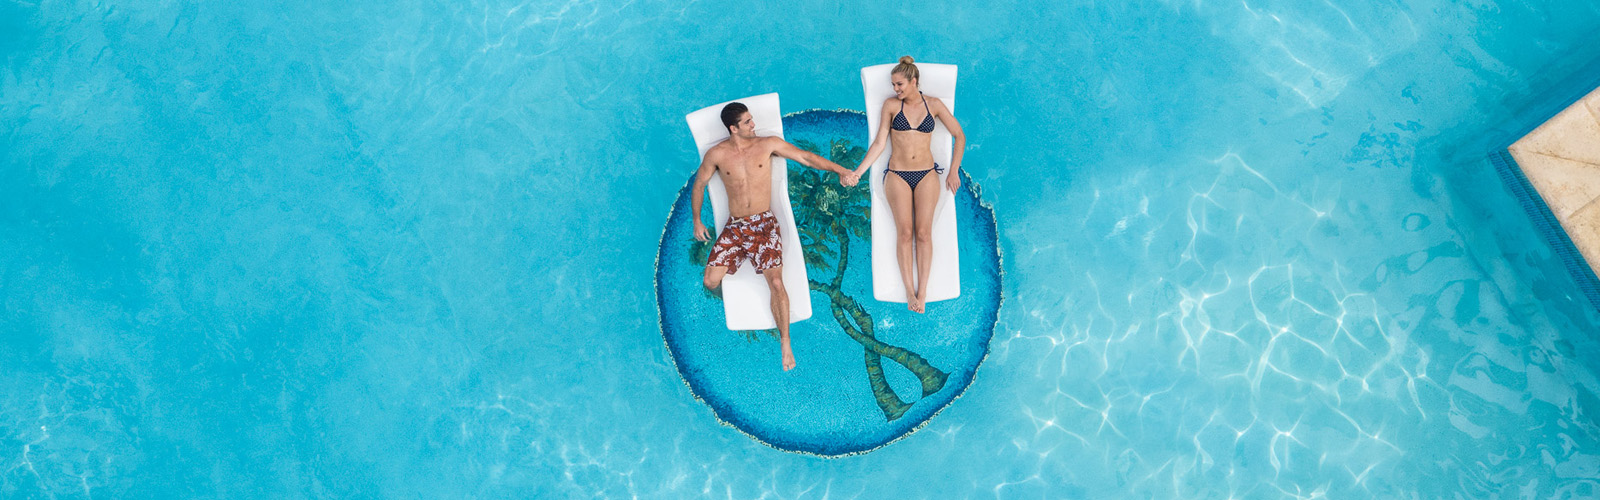 couple floating in pool